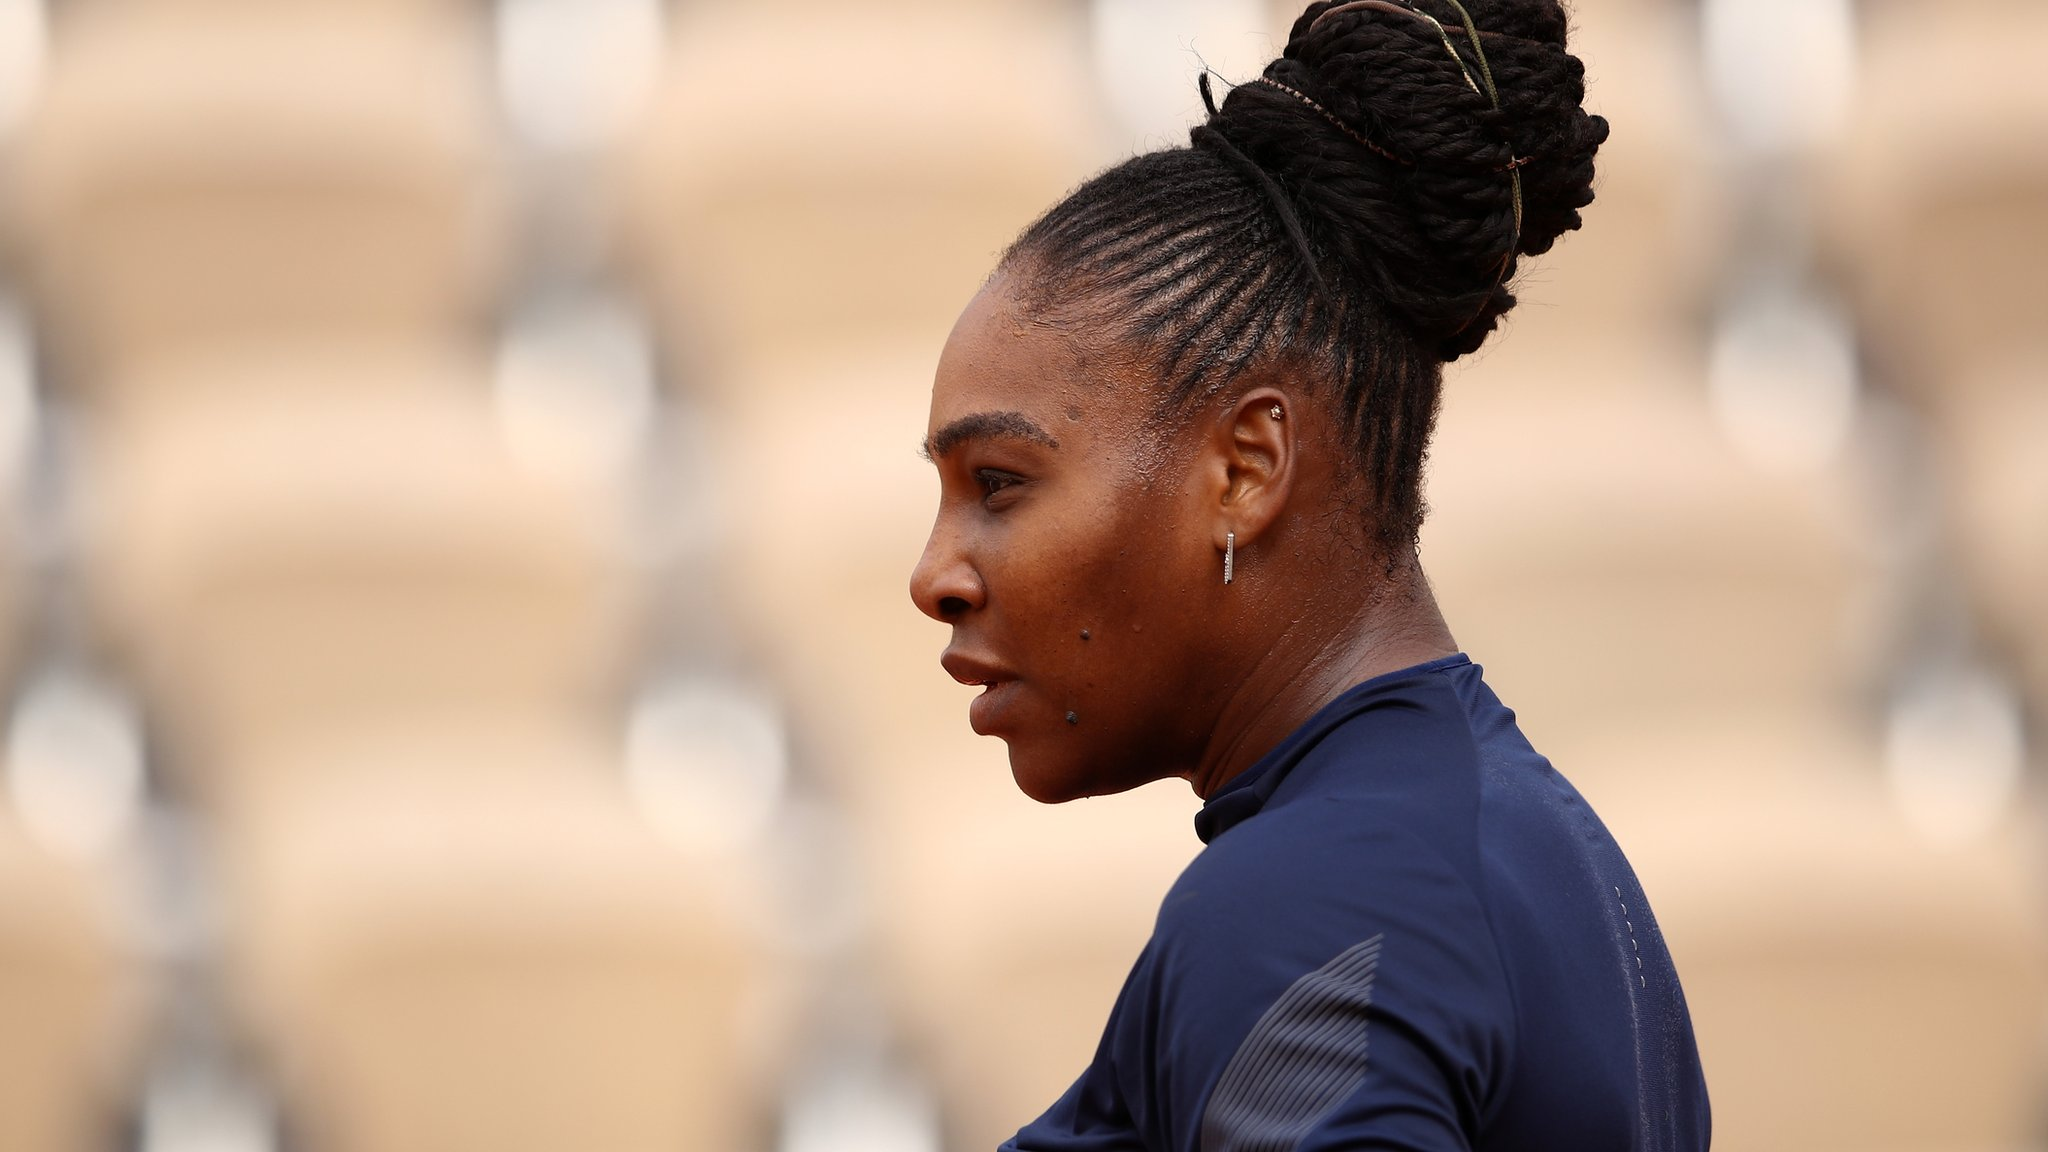 Williams to face Pliskova in Paris; Nadal drawn against Dolgopolov